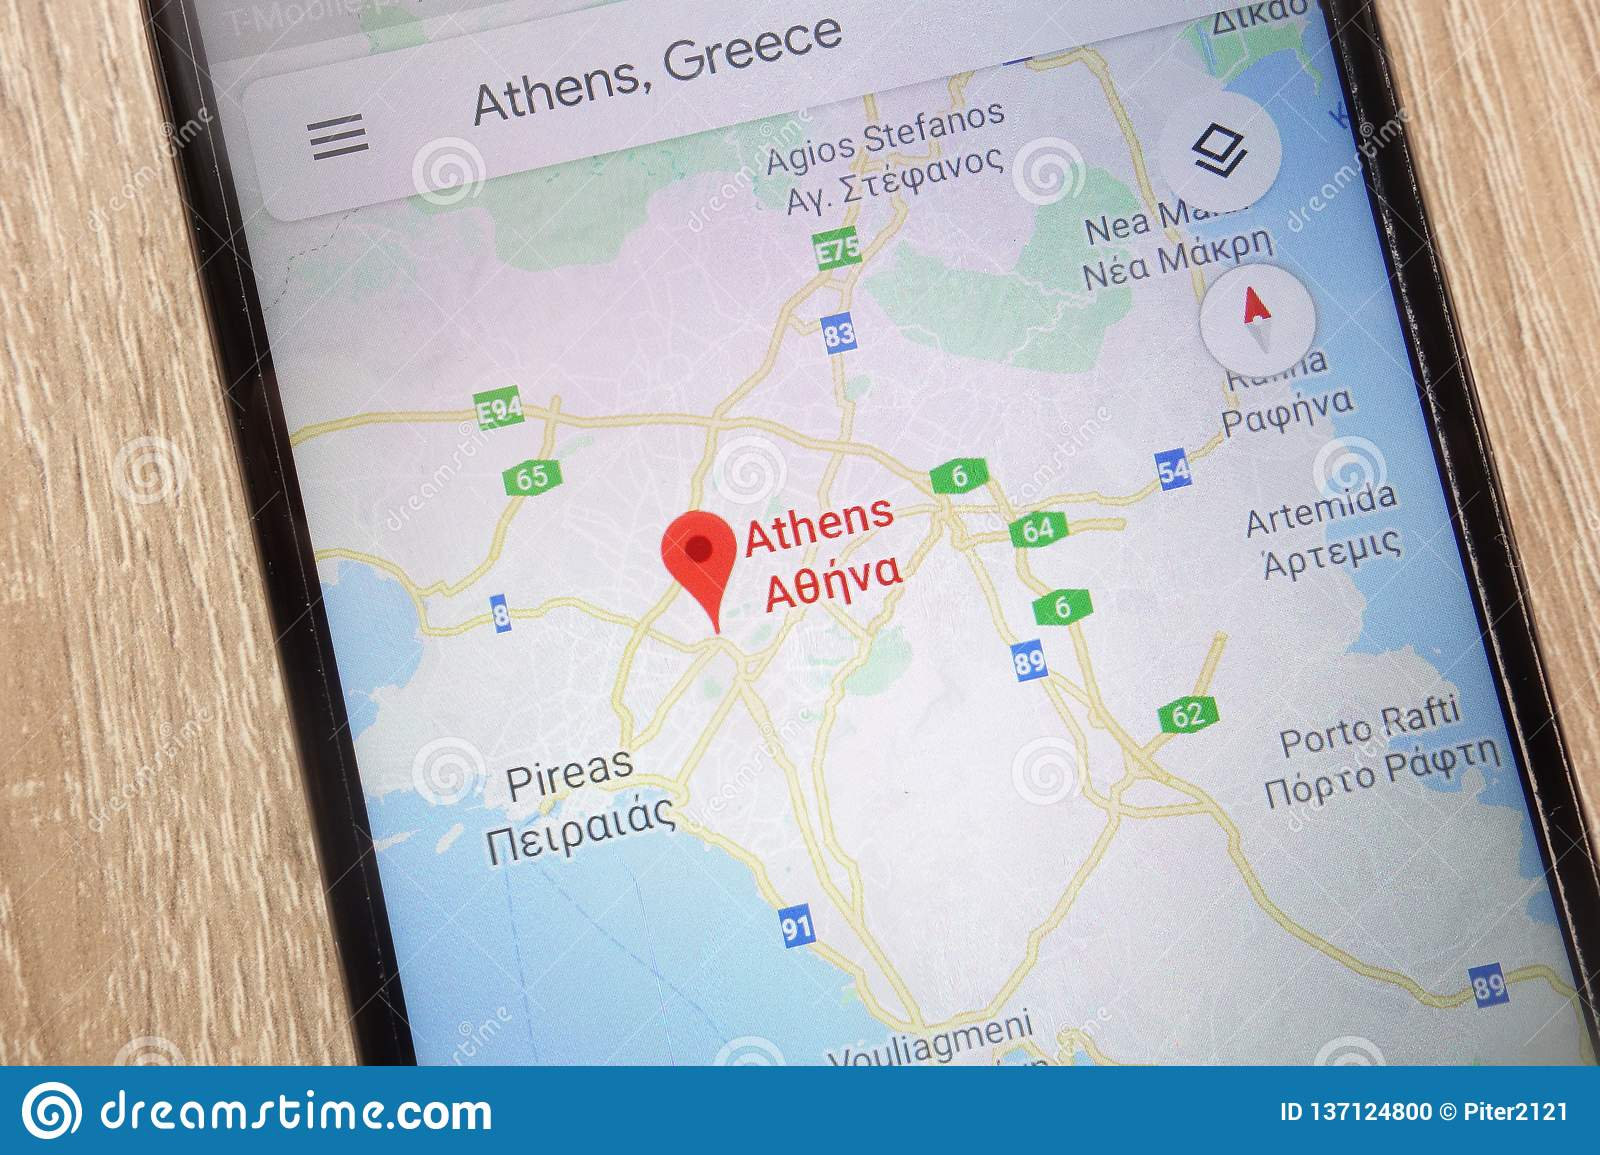 Athens Location On Google Maps Displayed On A Modern Smartphone